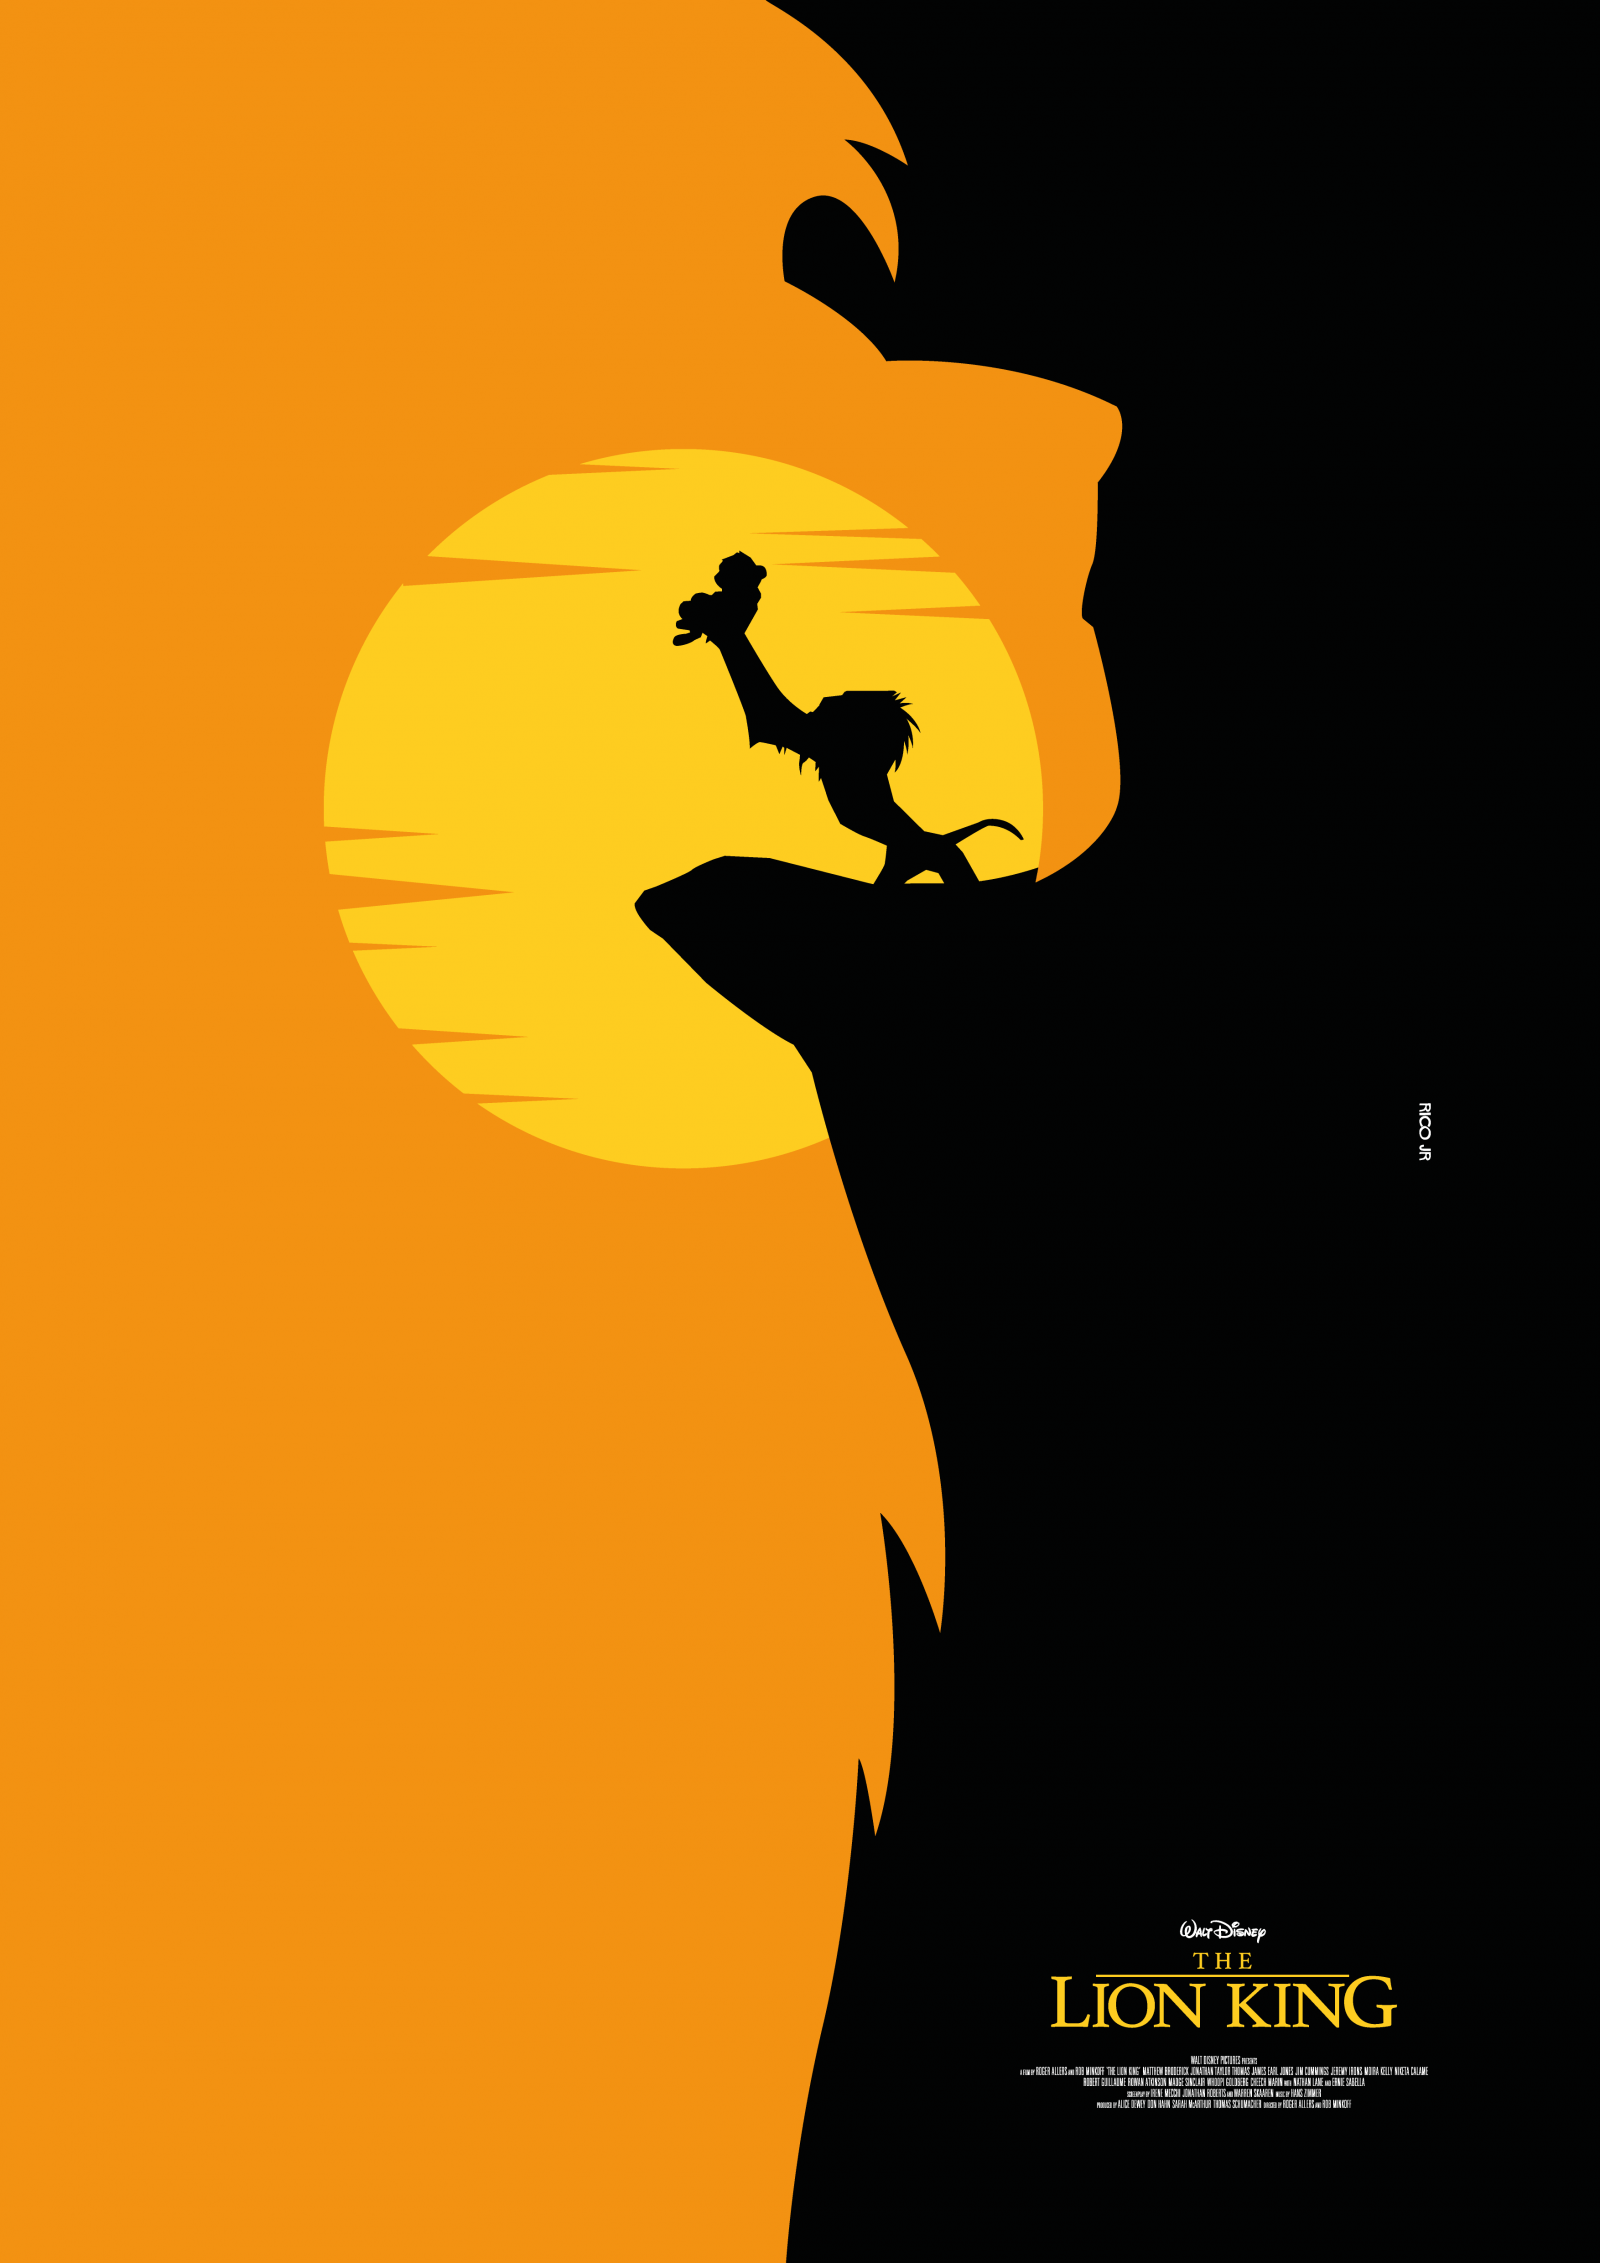 the lion king poster art